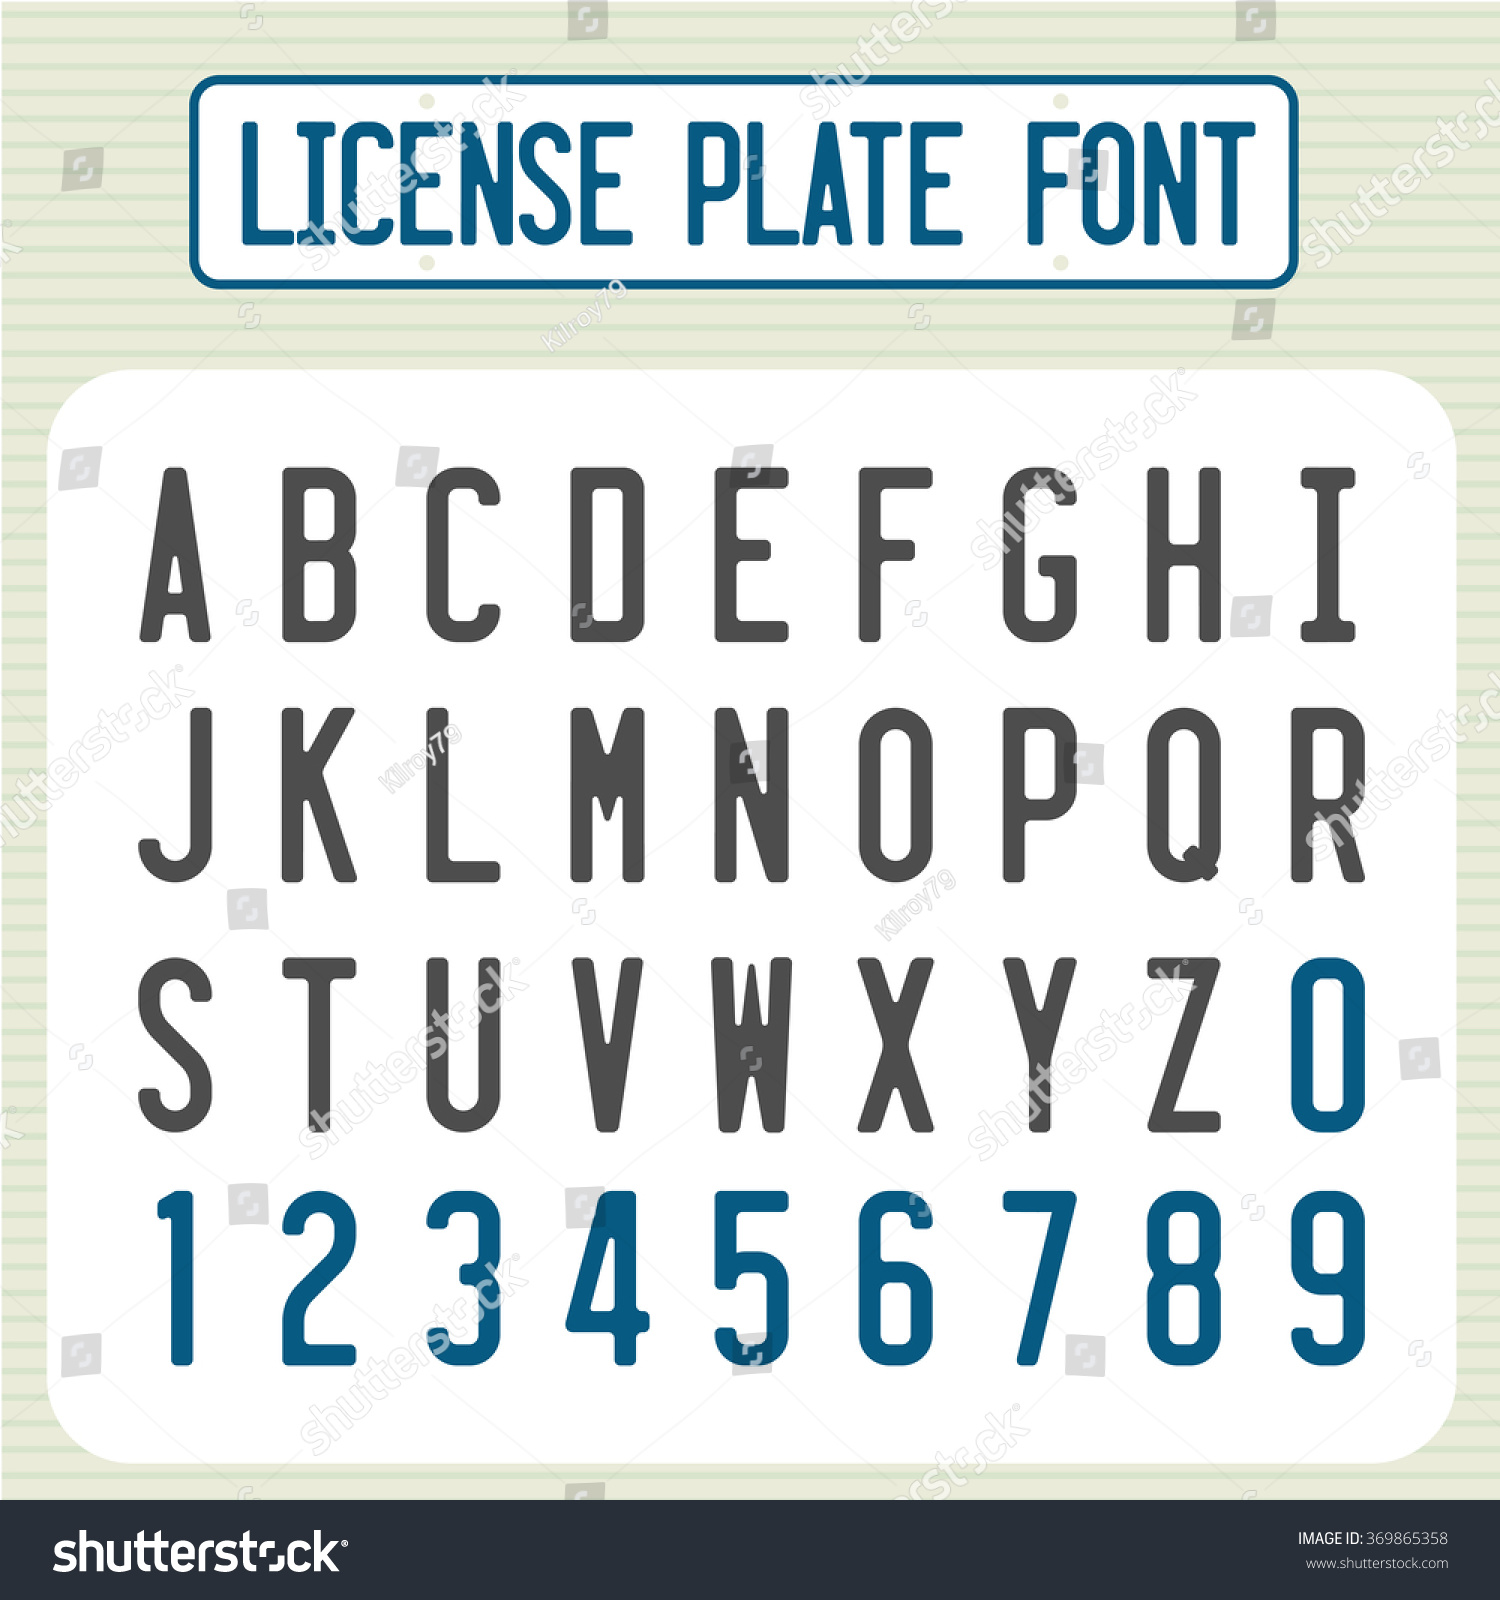 License Plate Font Car Identification Number Stock Vector